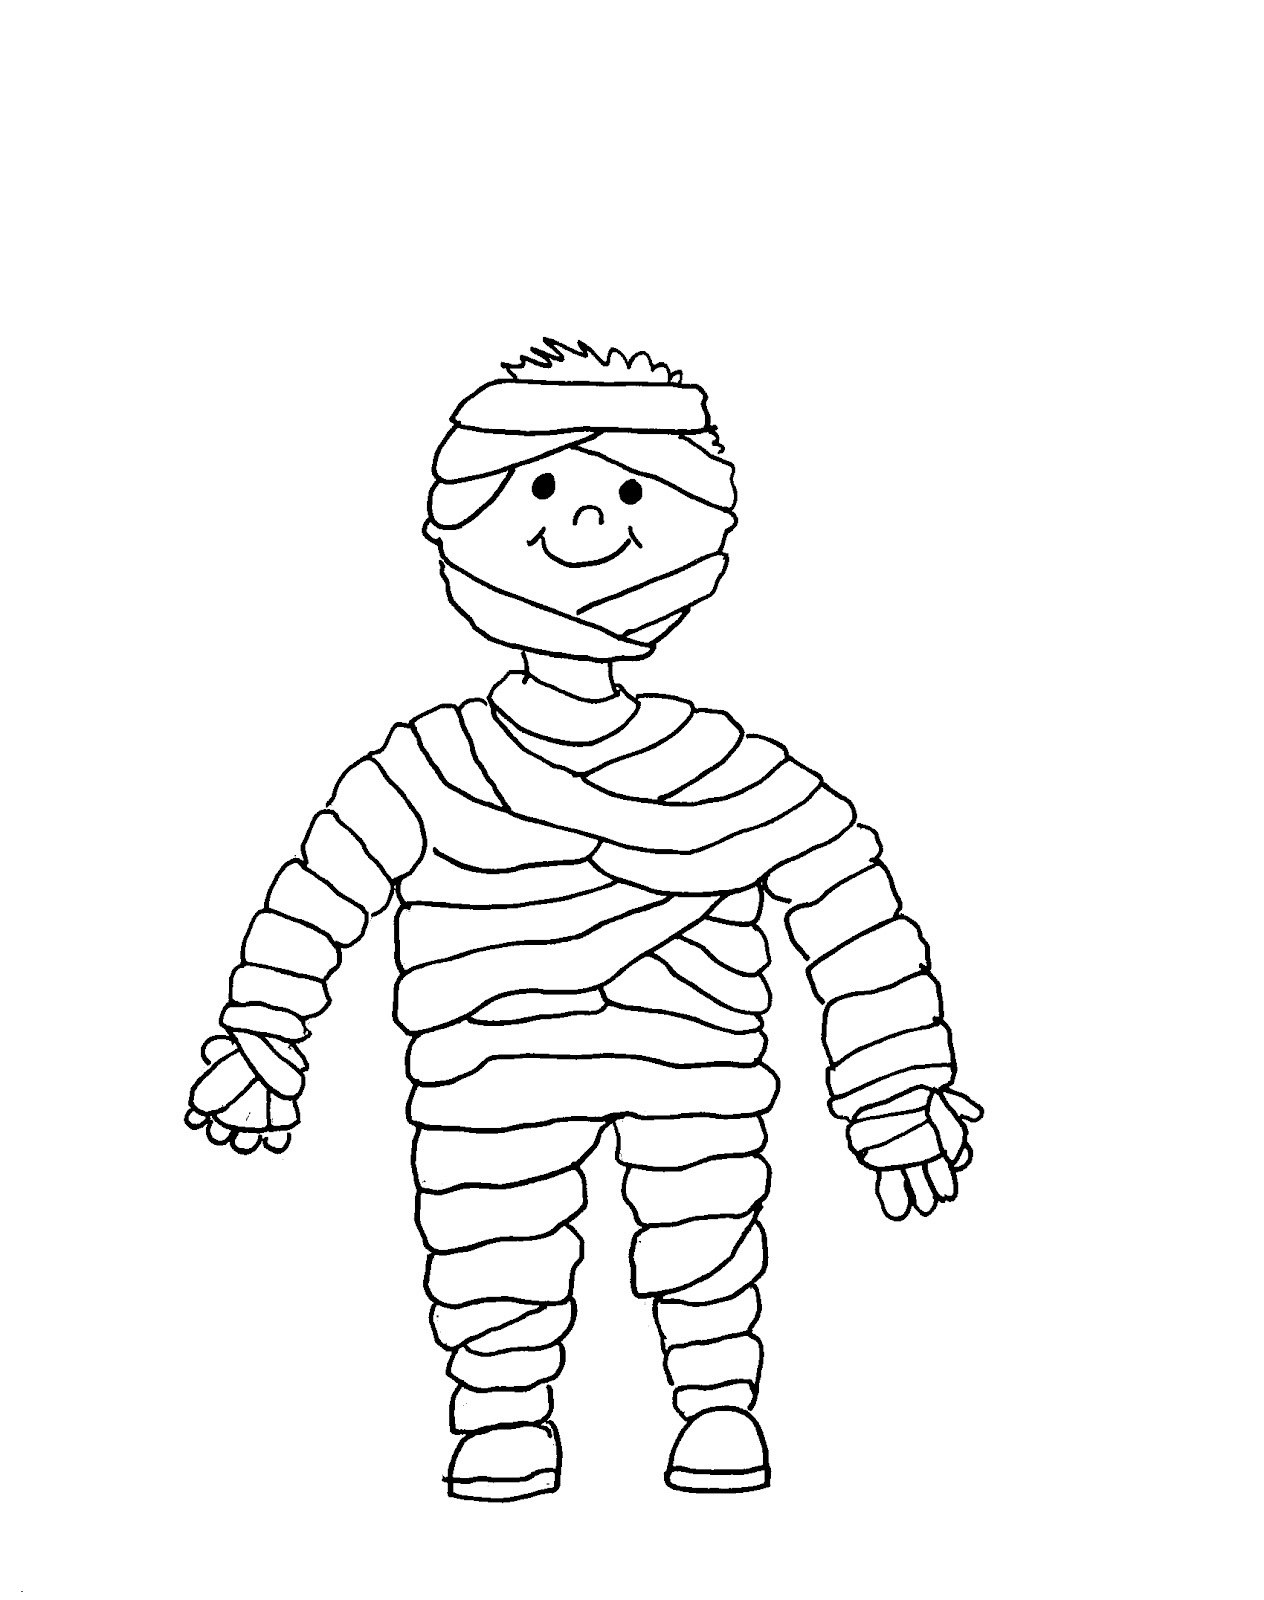 Cute Mummy Print Coloring Pages Free Printable Coloring